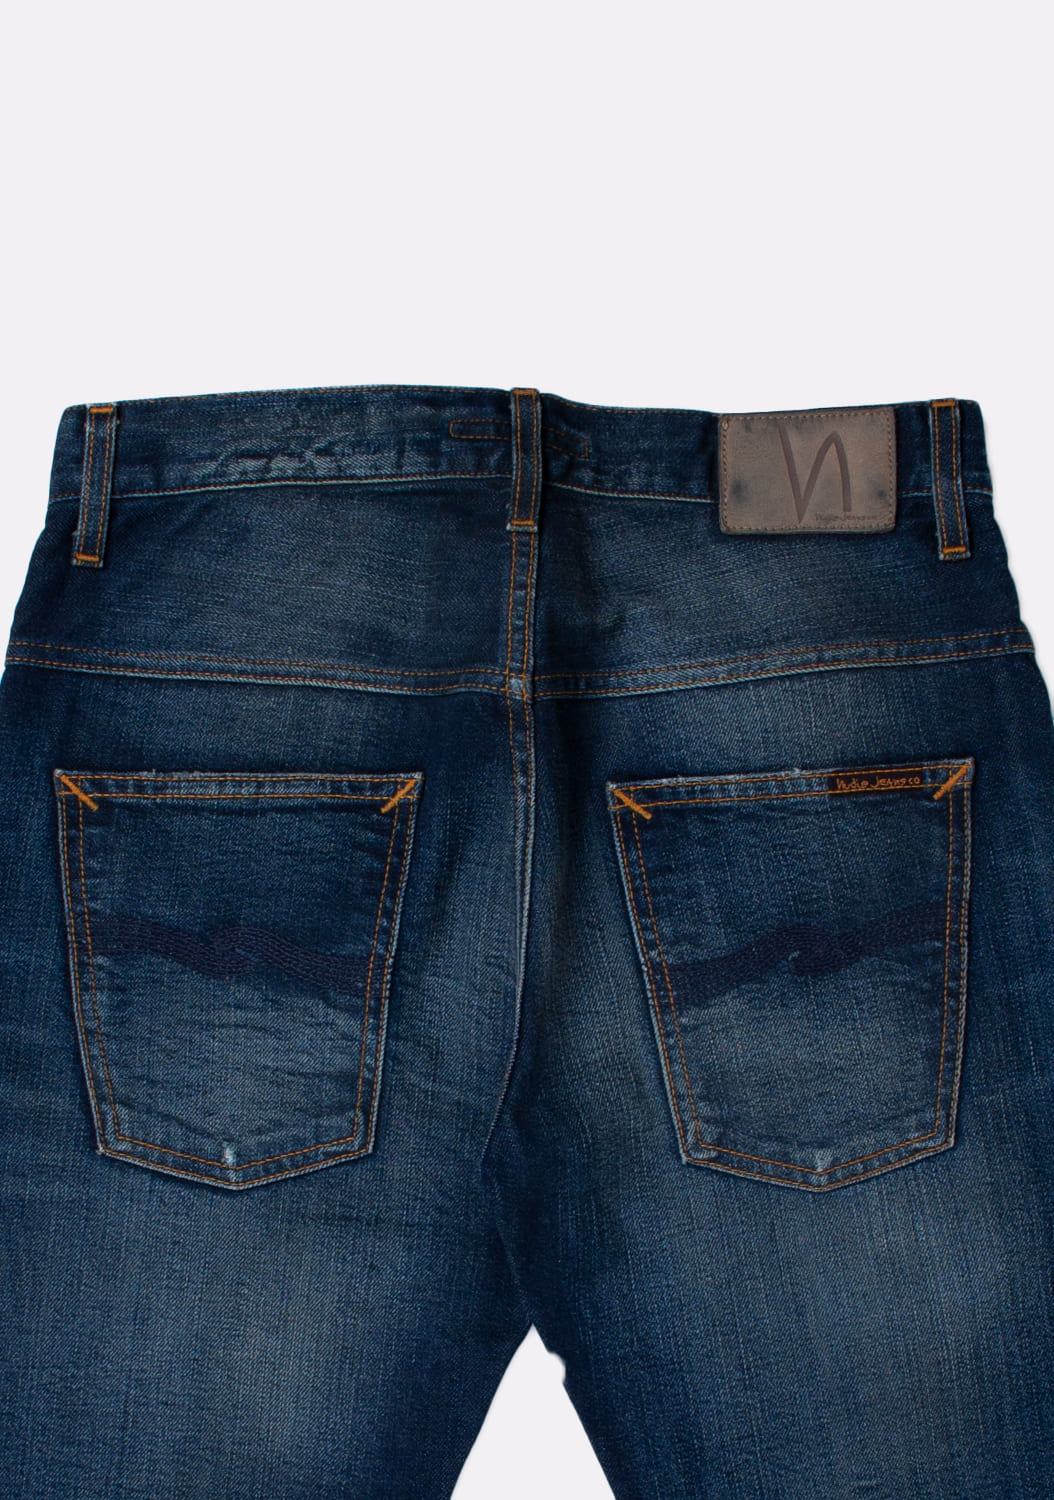 Nudie-Thin-Finn-Jonas-Replica-Selvage-Selvedge-melyni-dzinsai-dydis-31-32 (5)